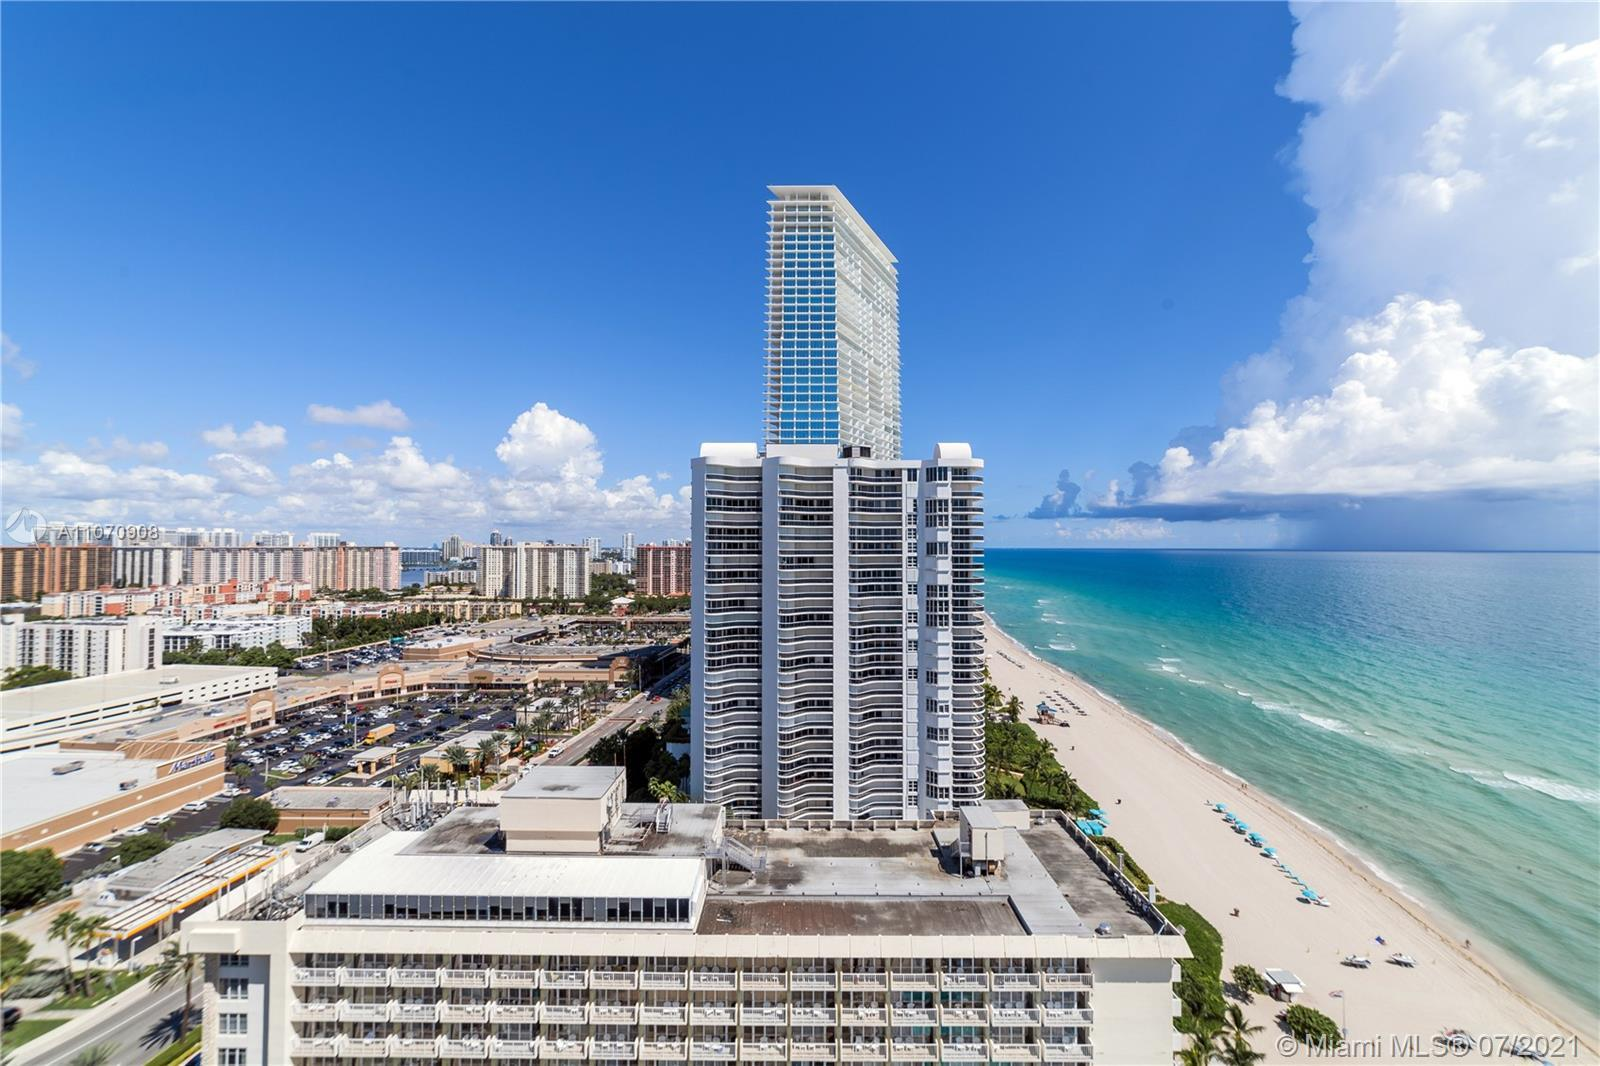 INVESTORS DREAM!!!!! YOUCAN RENT THIS UNIT 12 TIMES A YEAR!!! Amazing panoramic views of the ocean